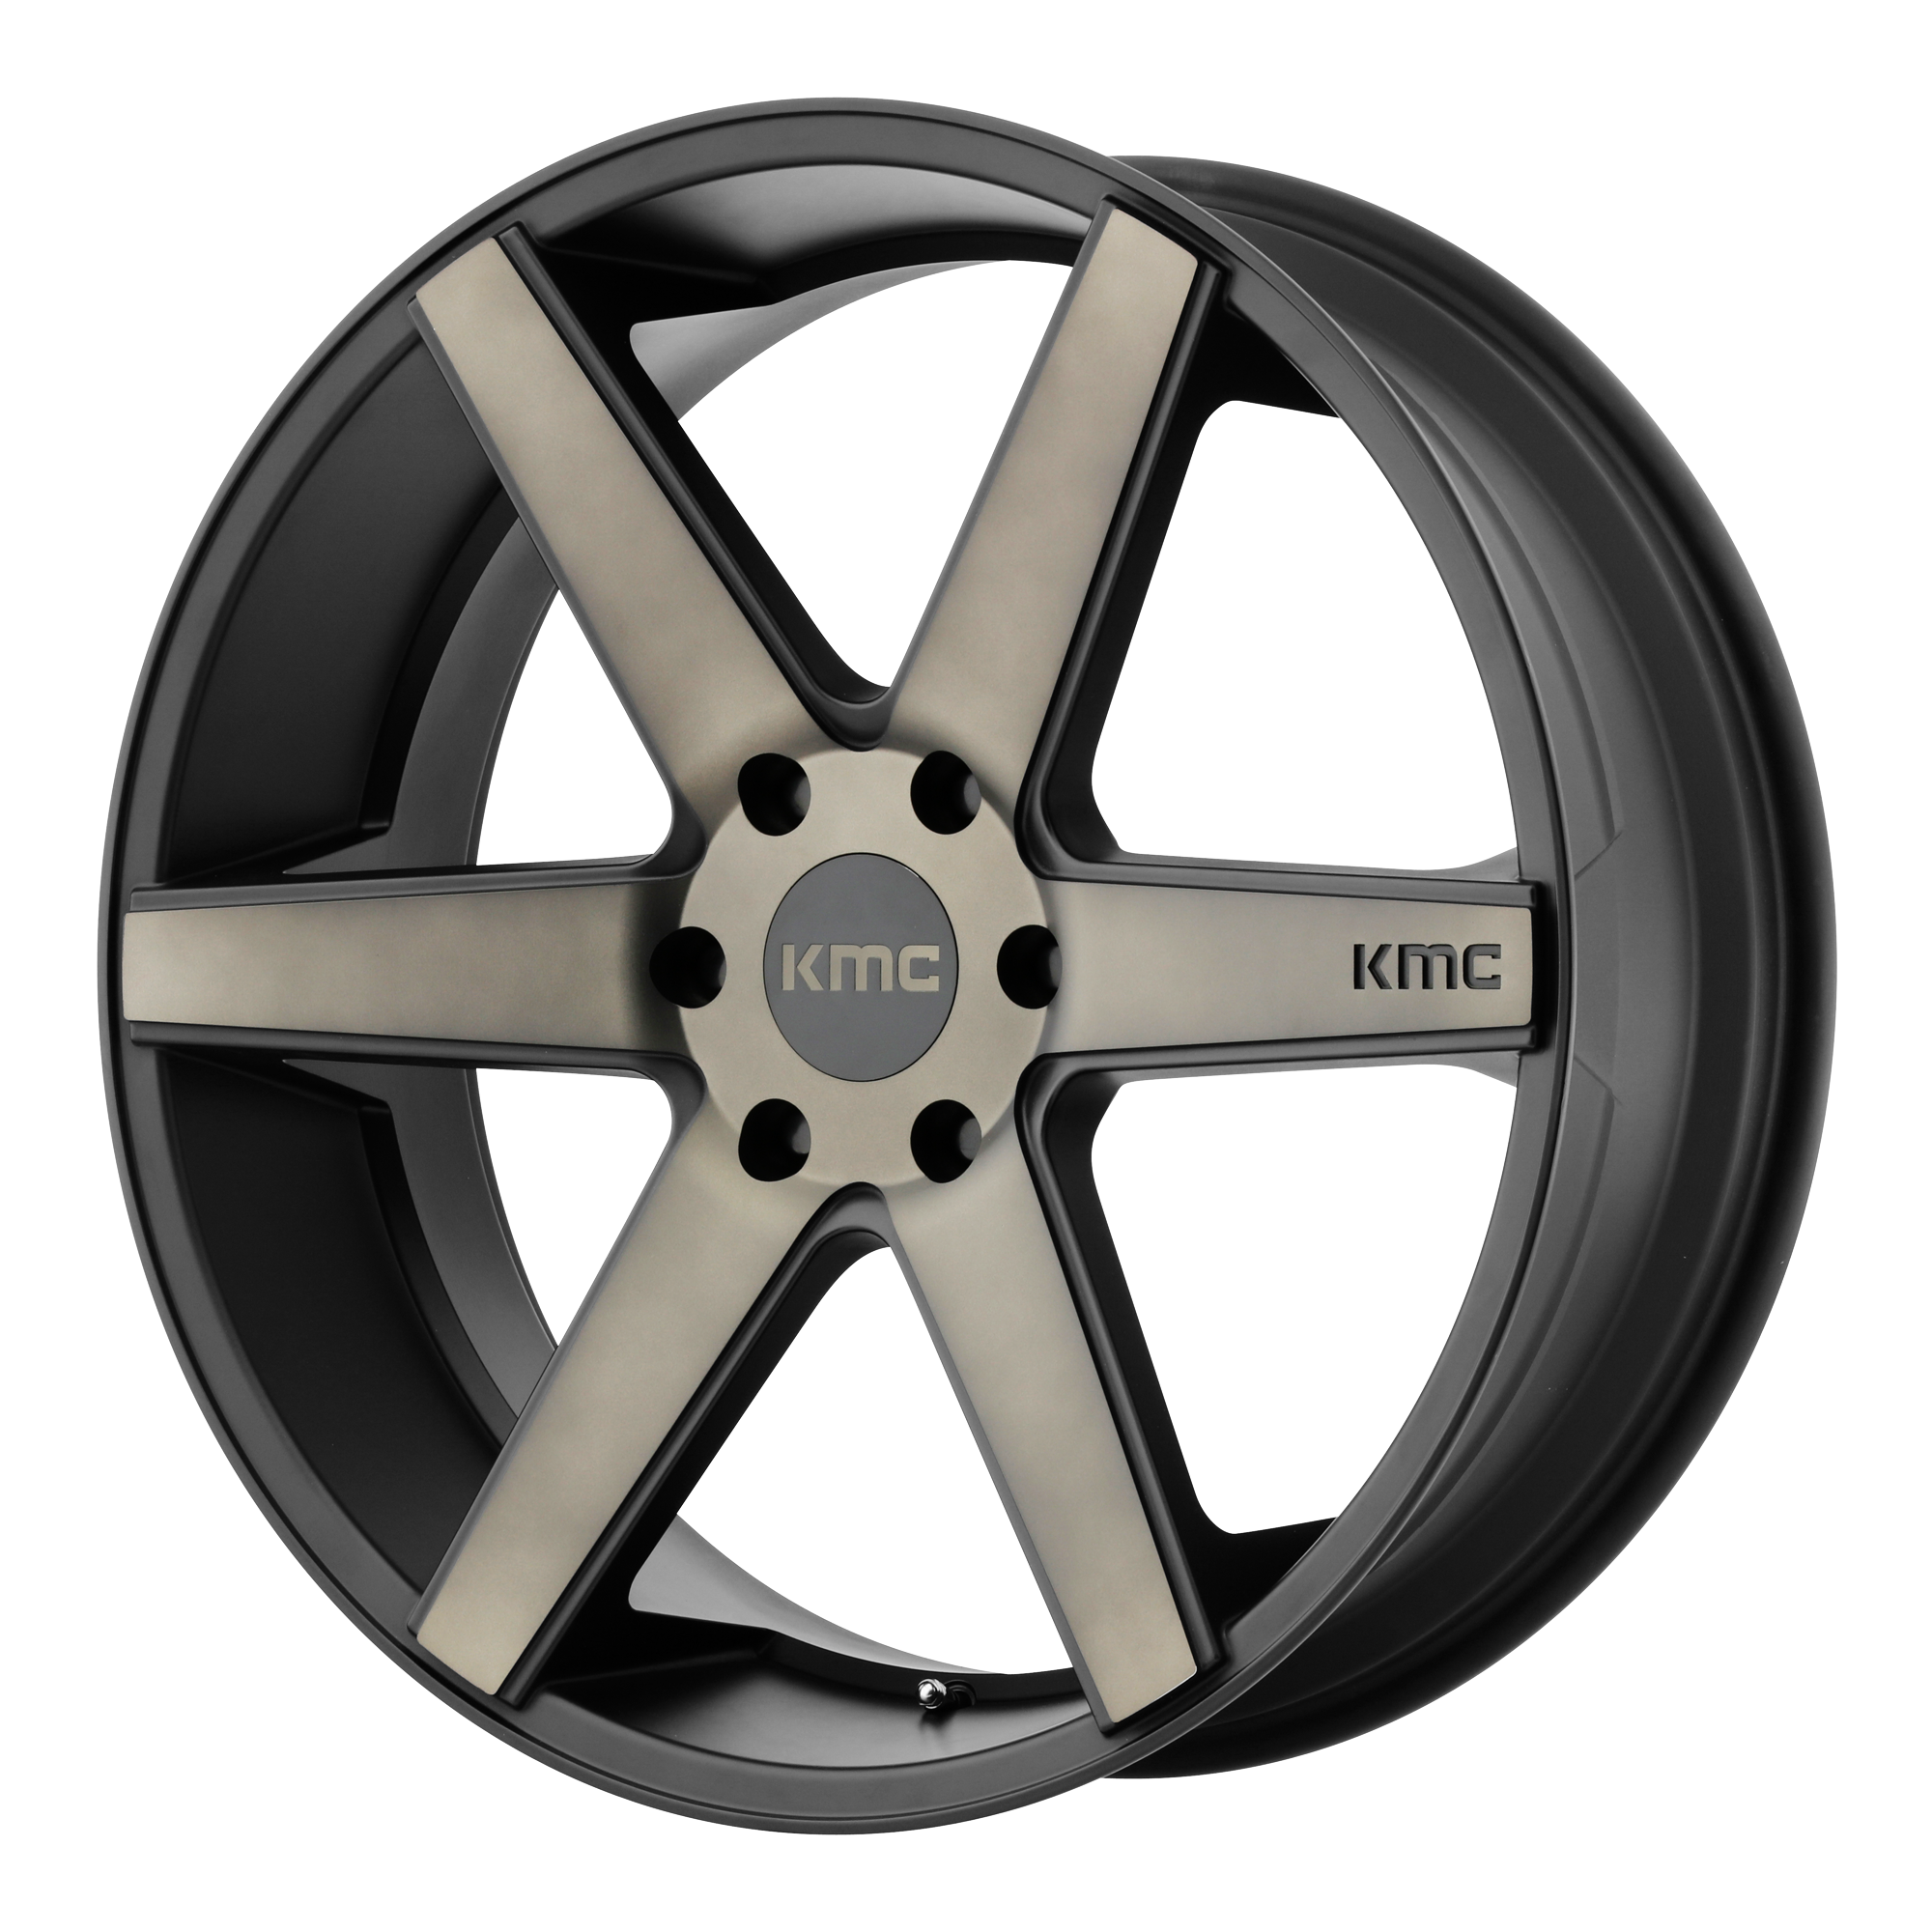 KMC Wheels DISTRICT TRUCK Matte Black w/ Dark TINT Clear Coat Face